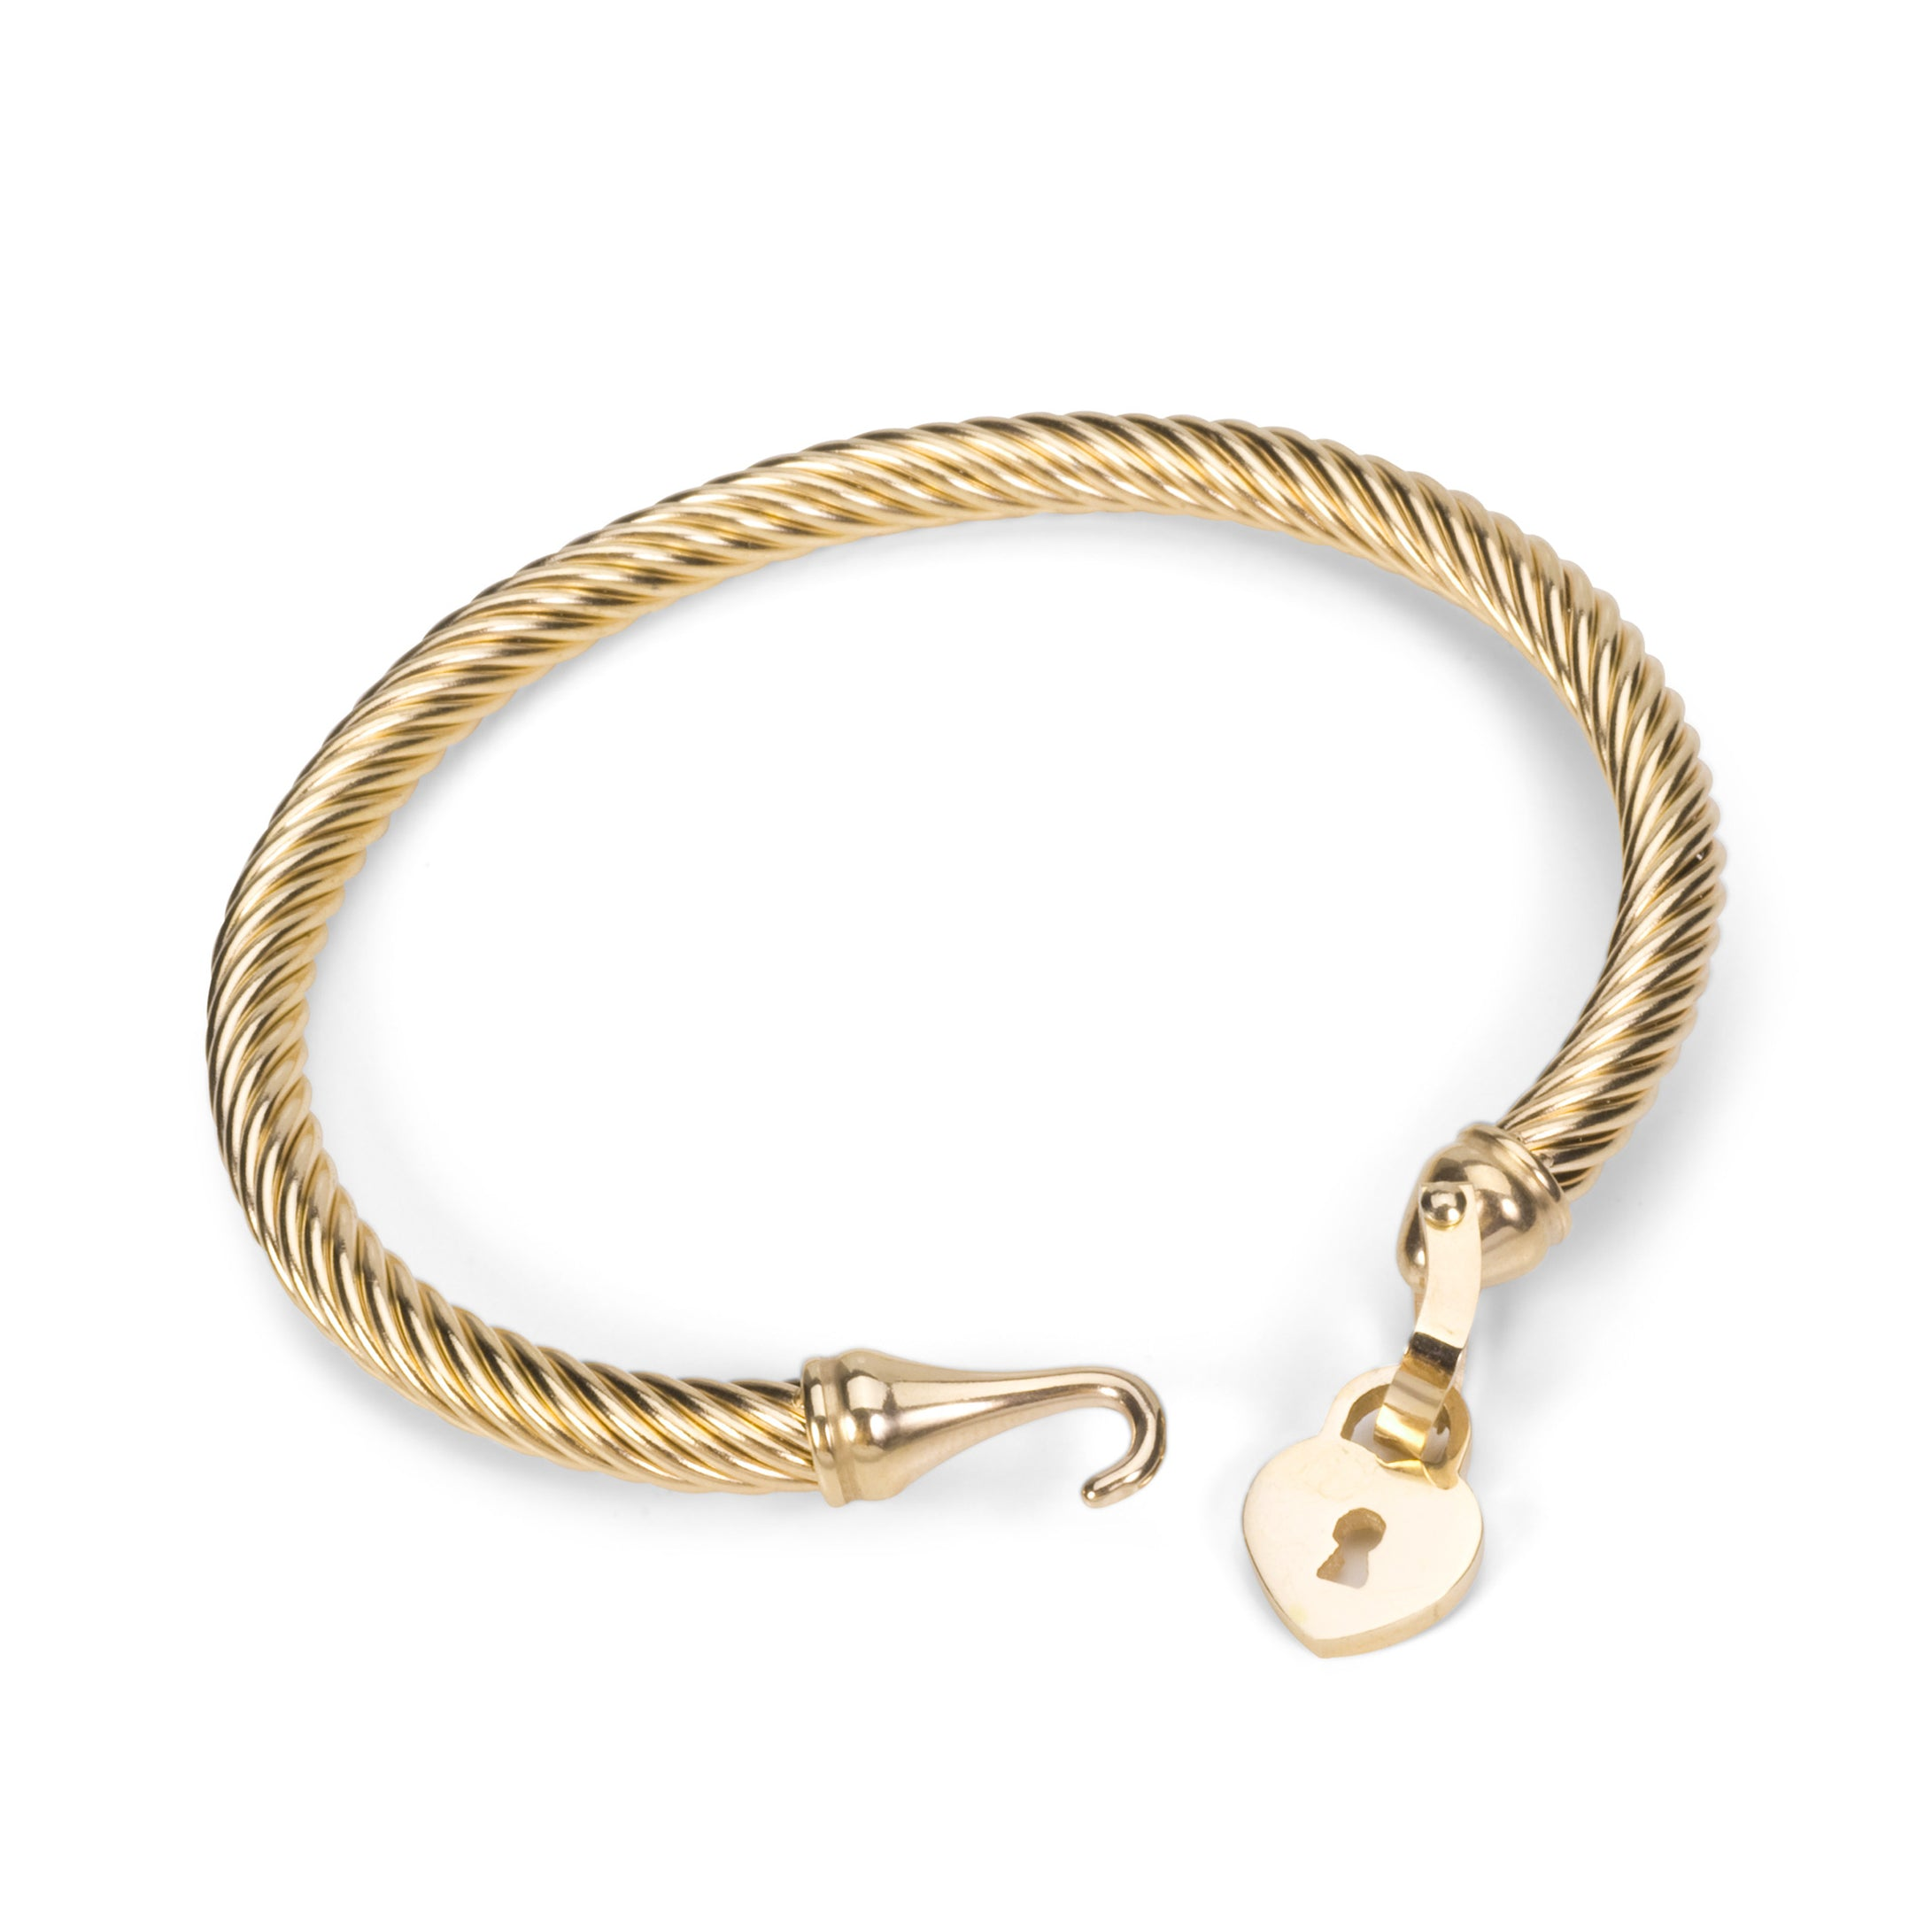 bracelet gold lifeheart heres here life shoponline to s hand drawn heart bead eartha charm kitts stretch